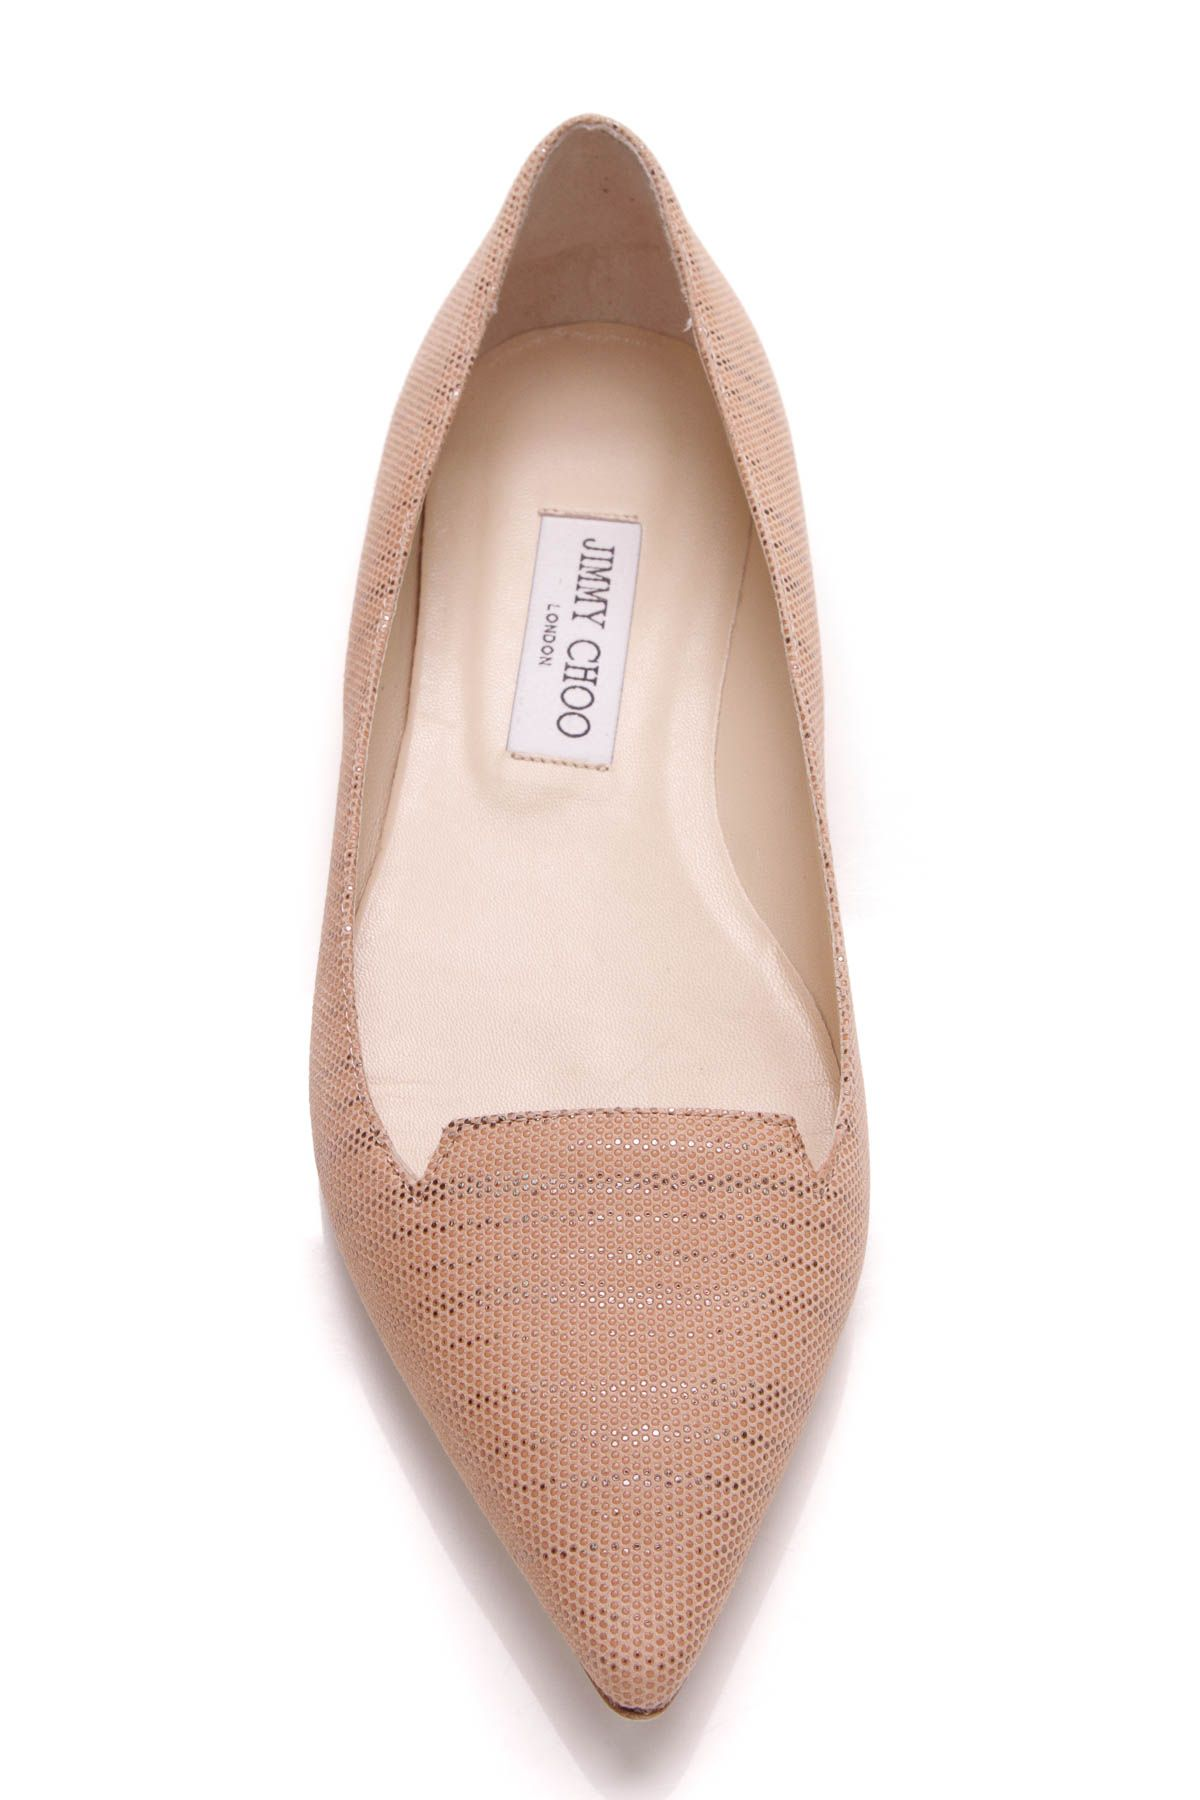 086c4d0fff8 Fabulous flats with a little sparkle by Jimmy Choo . .  jimmychoo   jimmychooshoes  flats  shoes  sparkle  shimmer  designer  designershoes   casualshoes ...